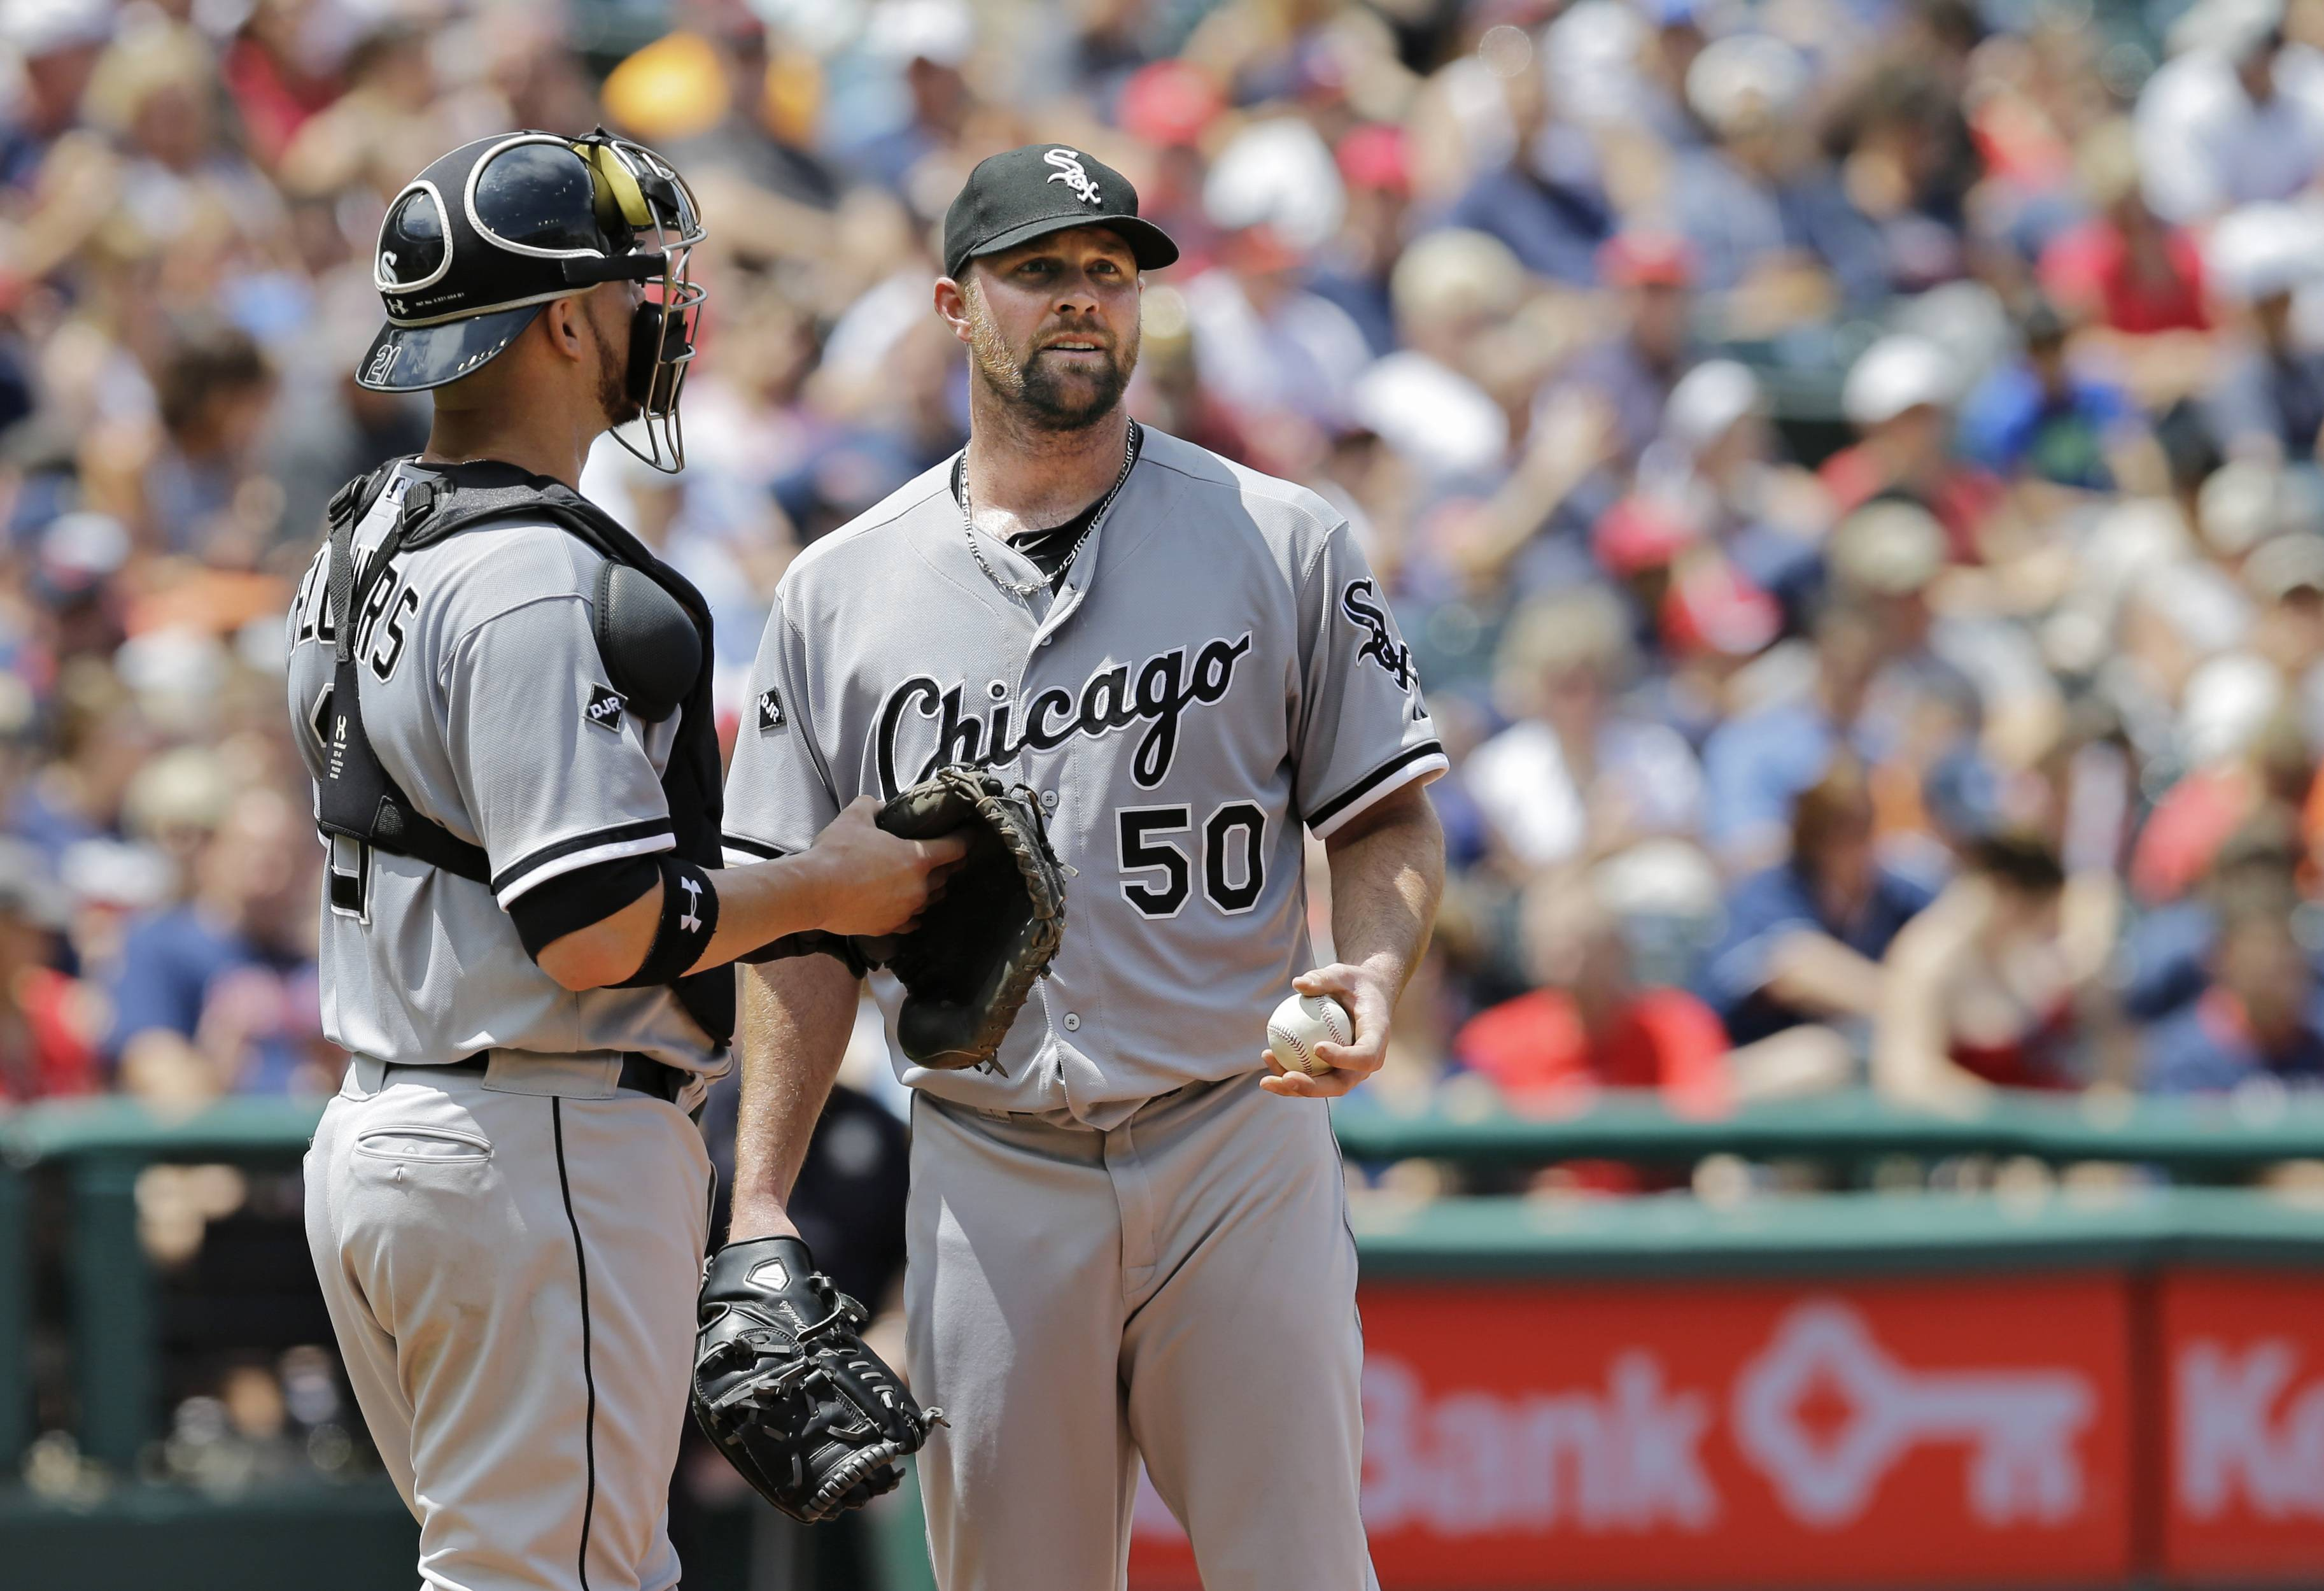 White Sox starting pitcher John Danks, talking to catcher Tyler Flowers, could be an attractive commodity for a team looking for a left-hander.